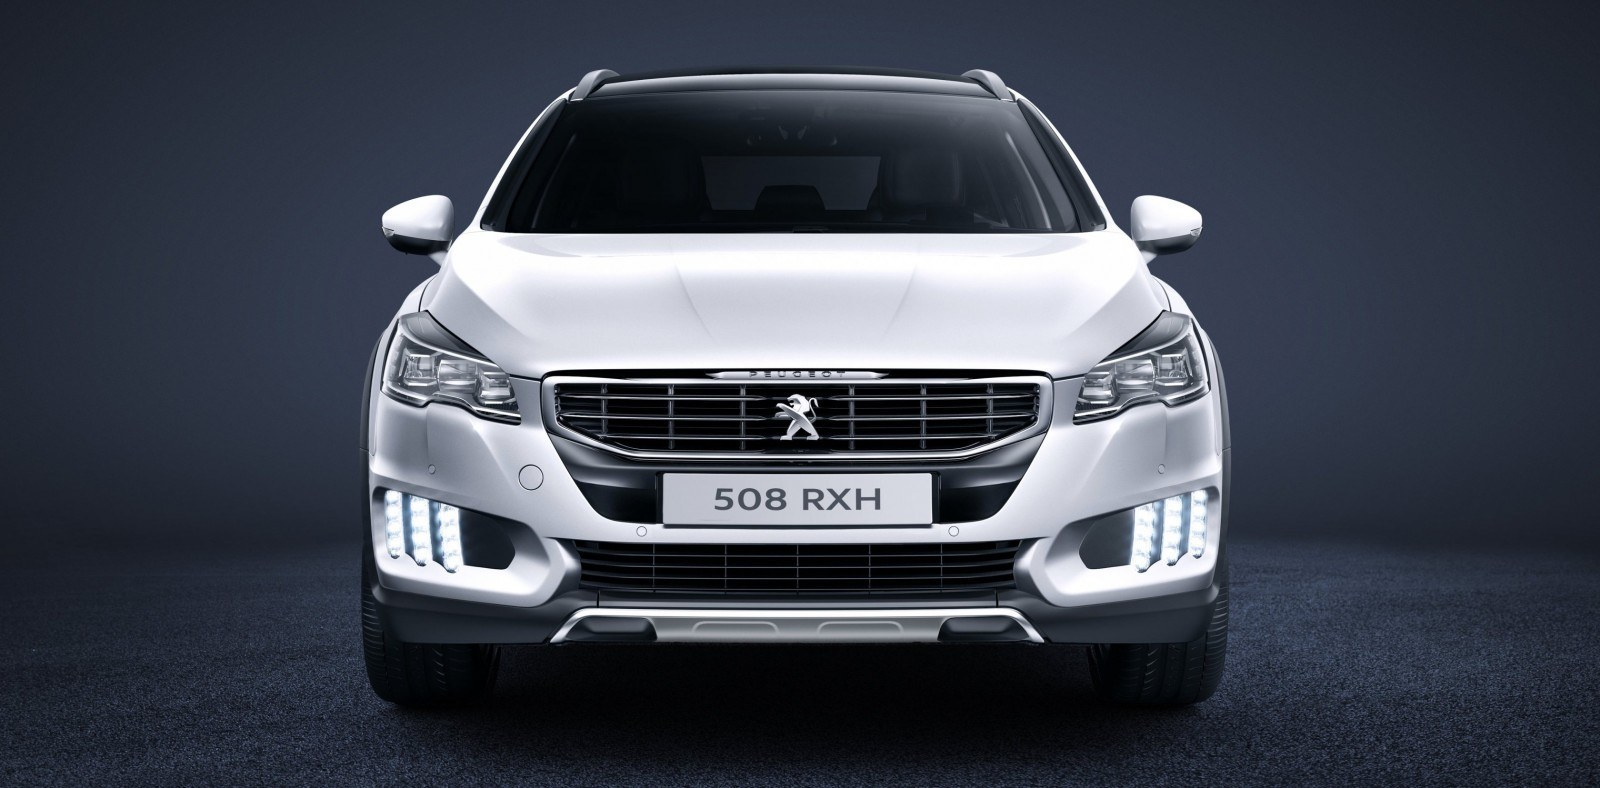 2015 Peugeot 508 Facelifted With New LED DRLs, Box-Design Beams and Tweaked Cabin Tech 13